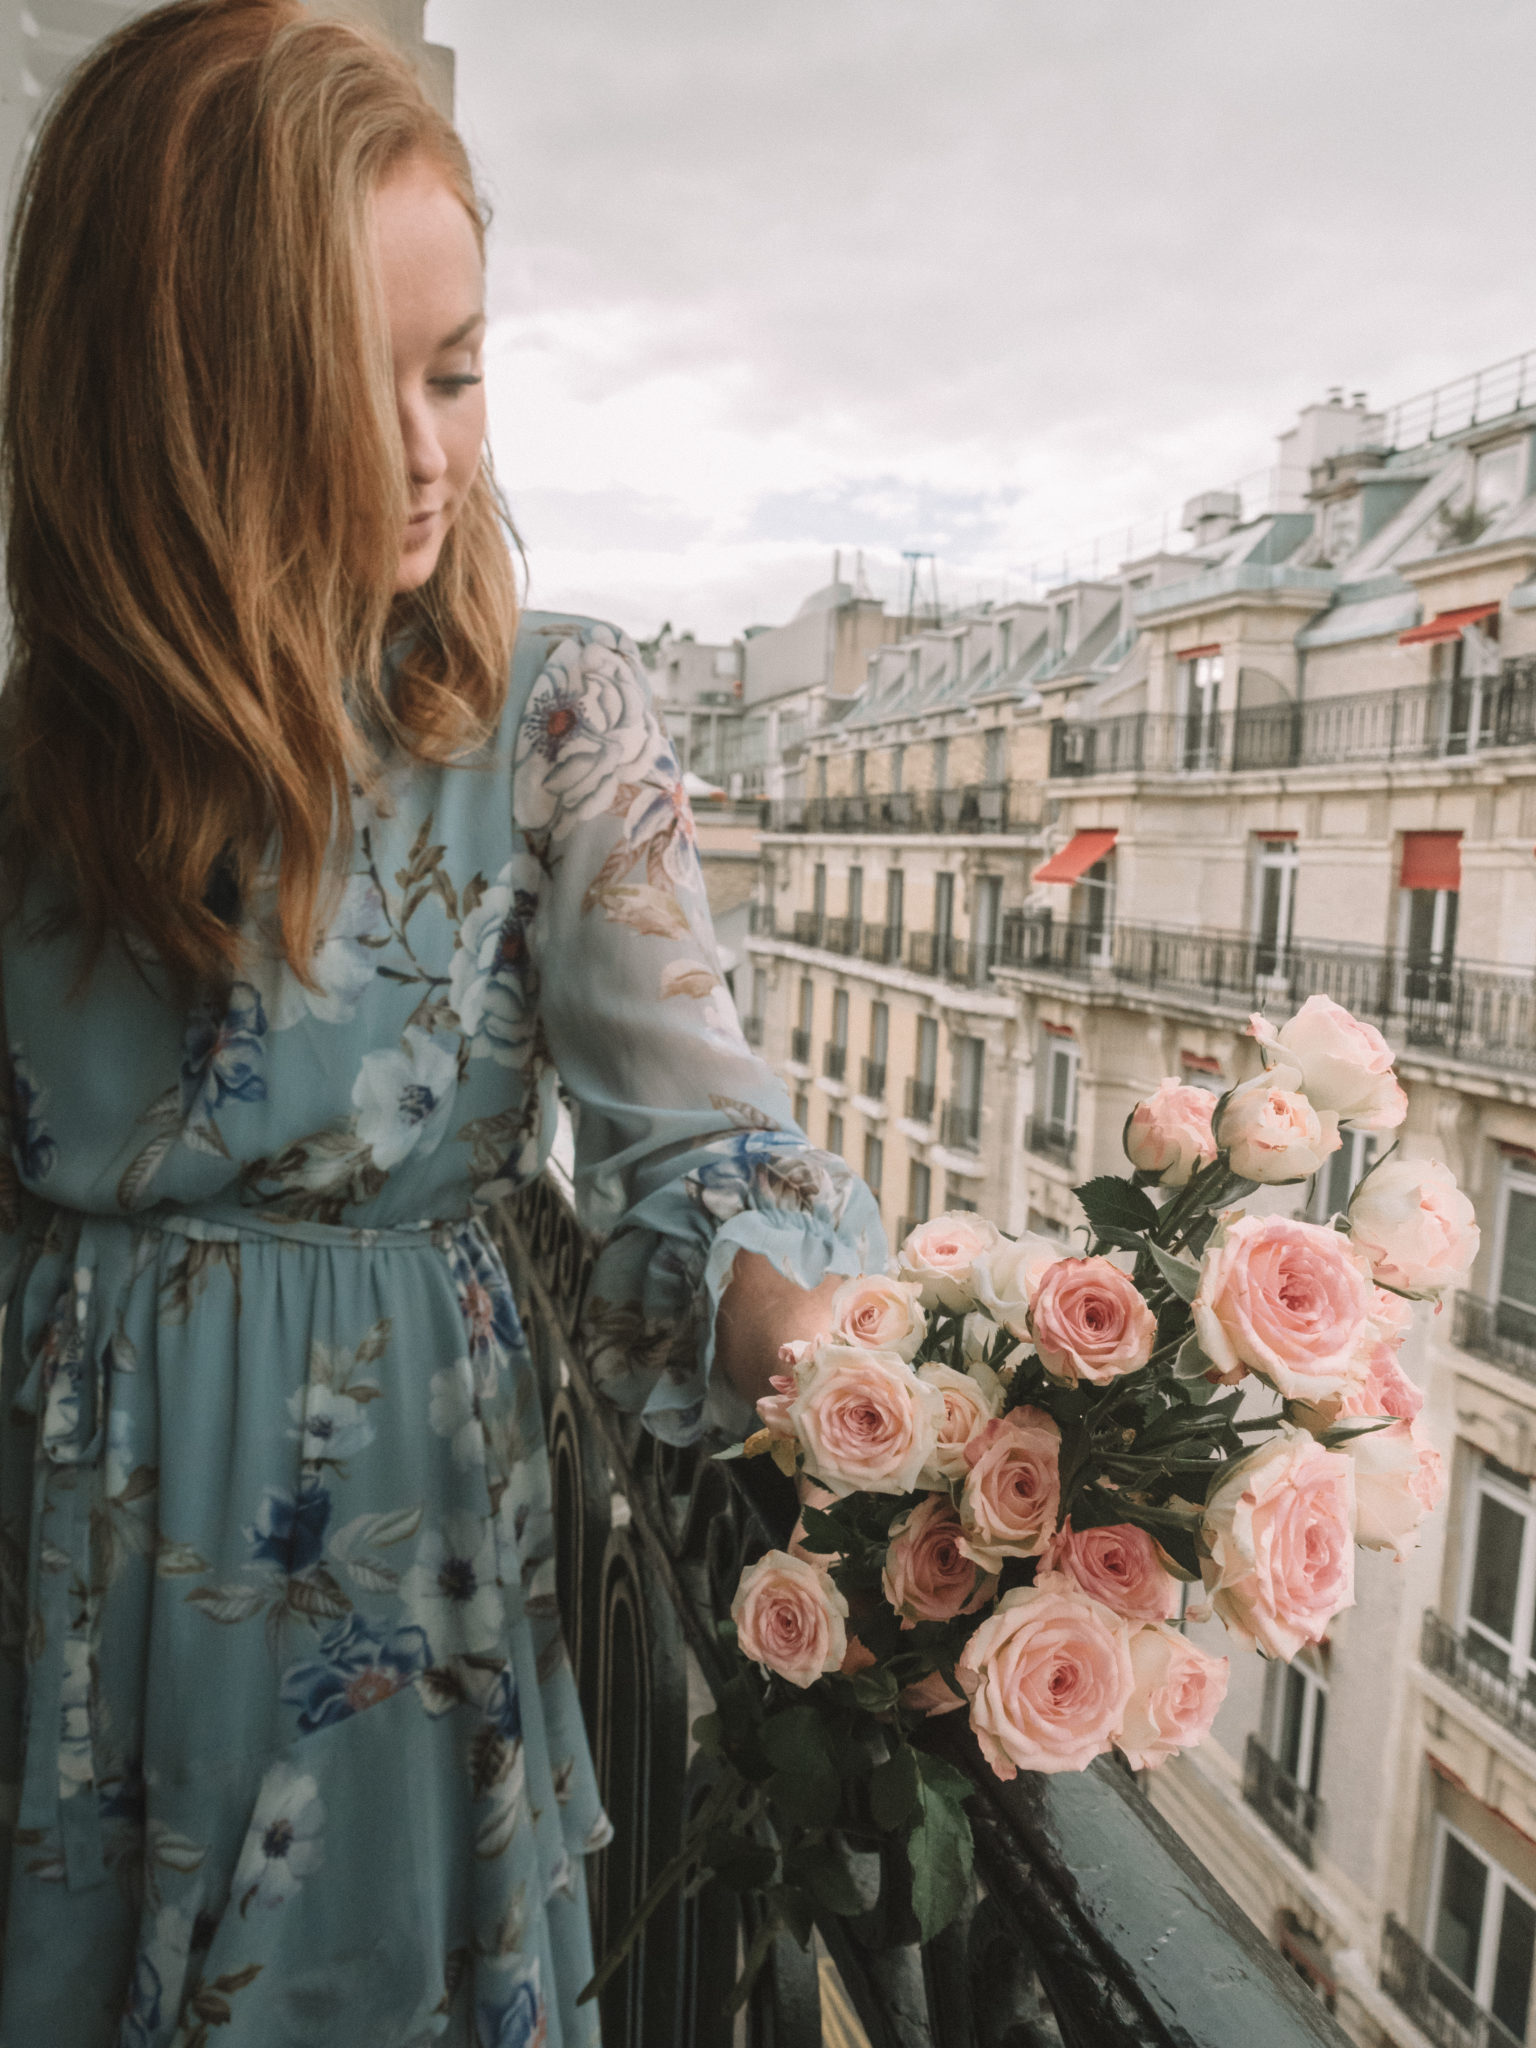 Brooke Saward in Paris | WORLD OF WANDERLUST